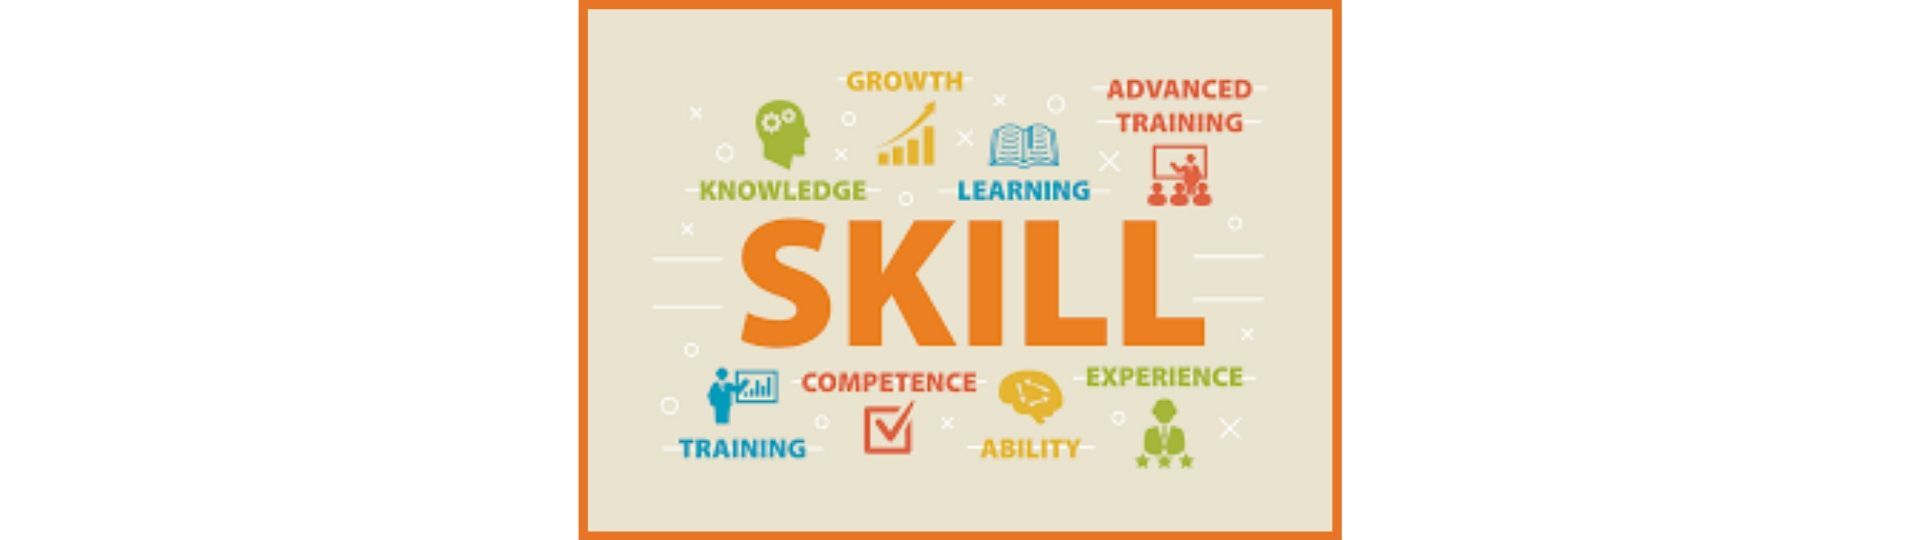 skills required for entrepreneurial journey